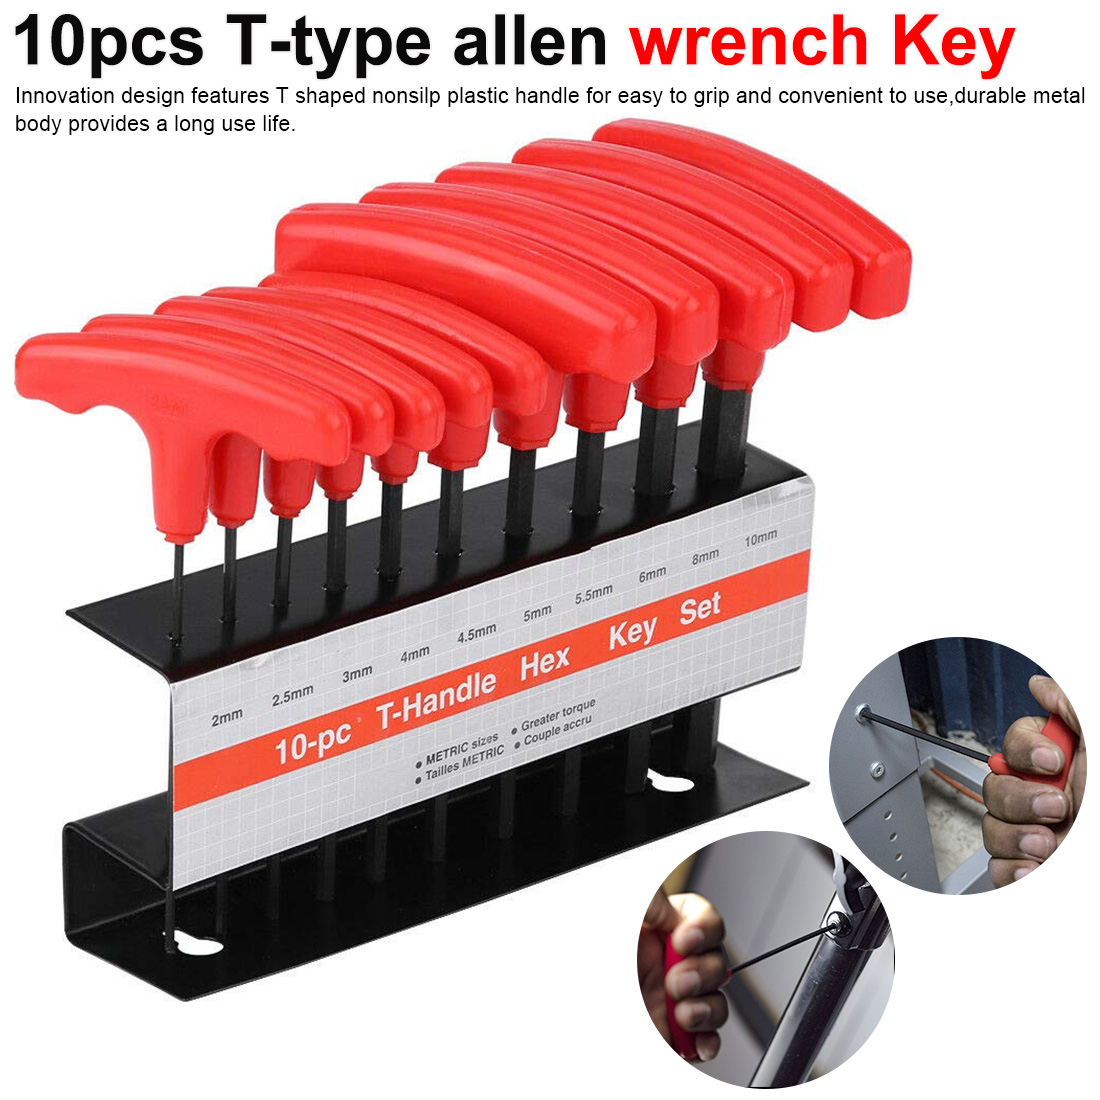 10pcs T-Handle Hex Key Allen Wrench 2.00mm-10.0mm Metric Wrench Set Non-slip Multifunctional Wrenches Repair Hand Tools